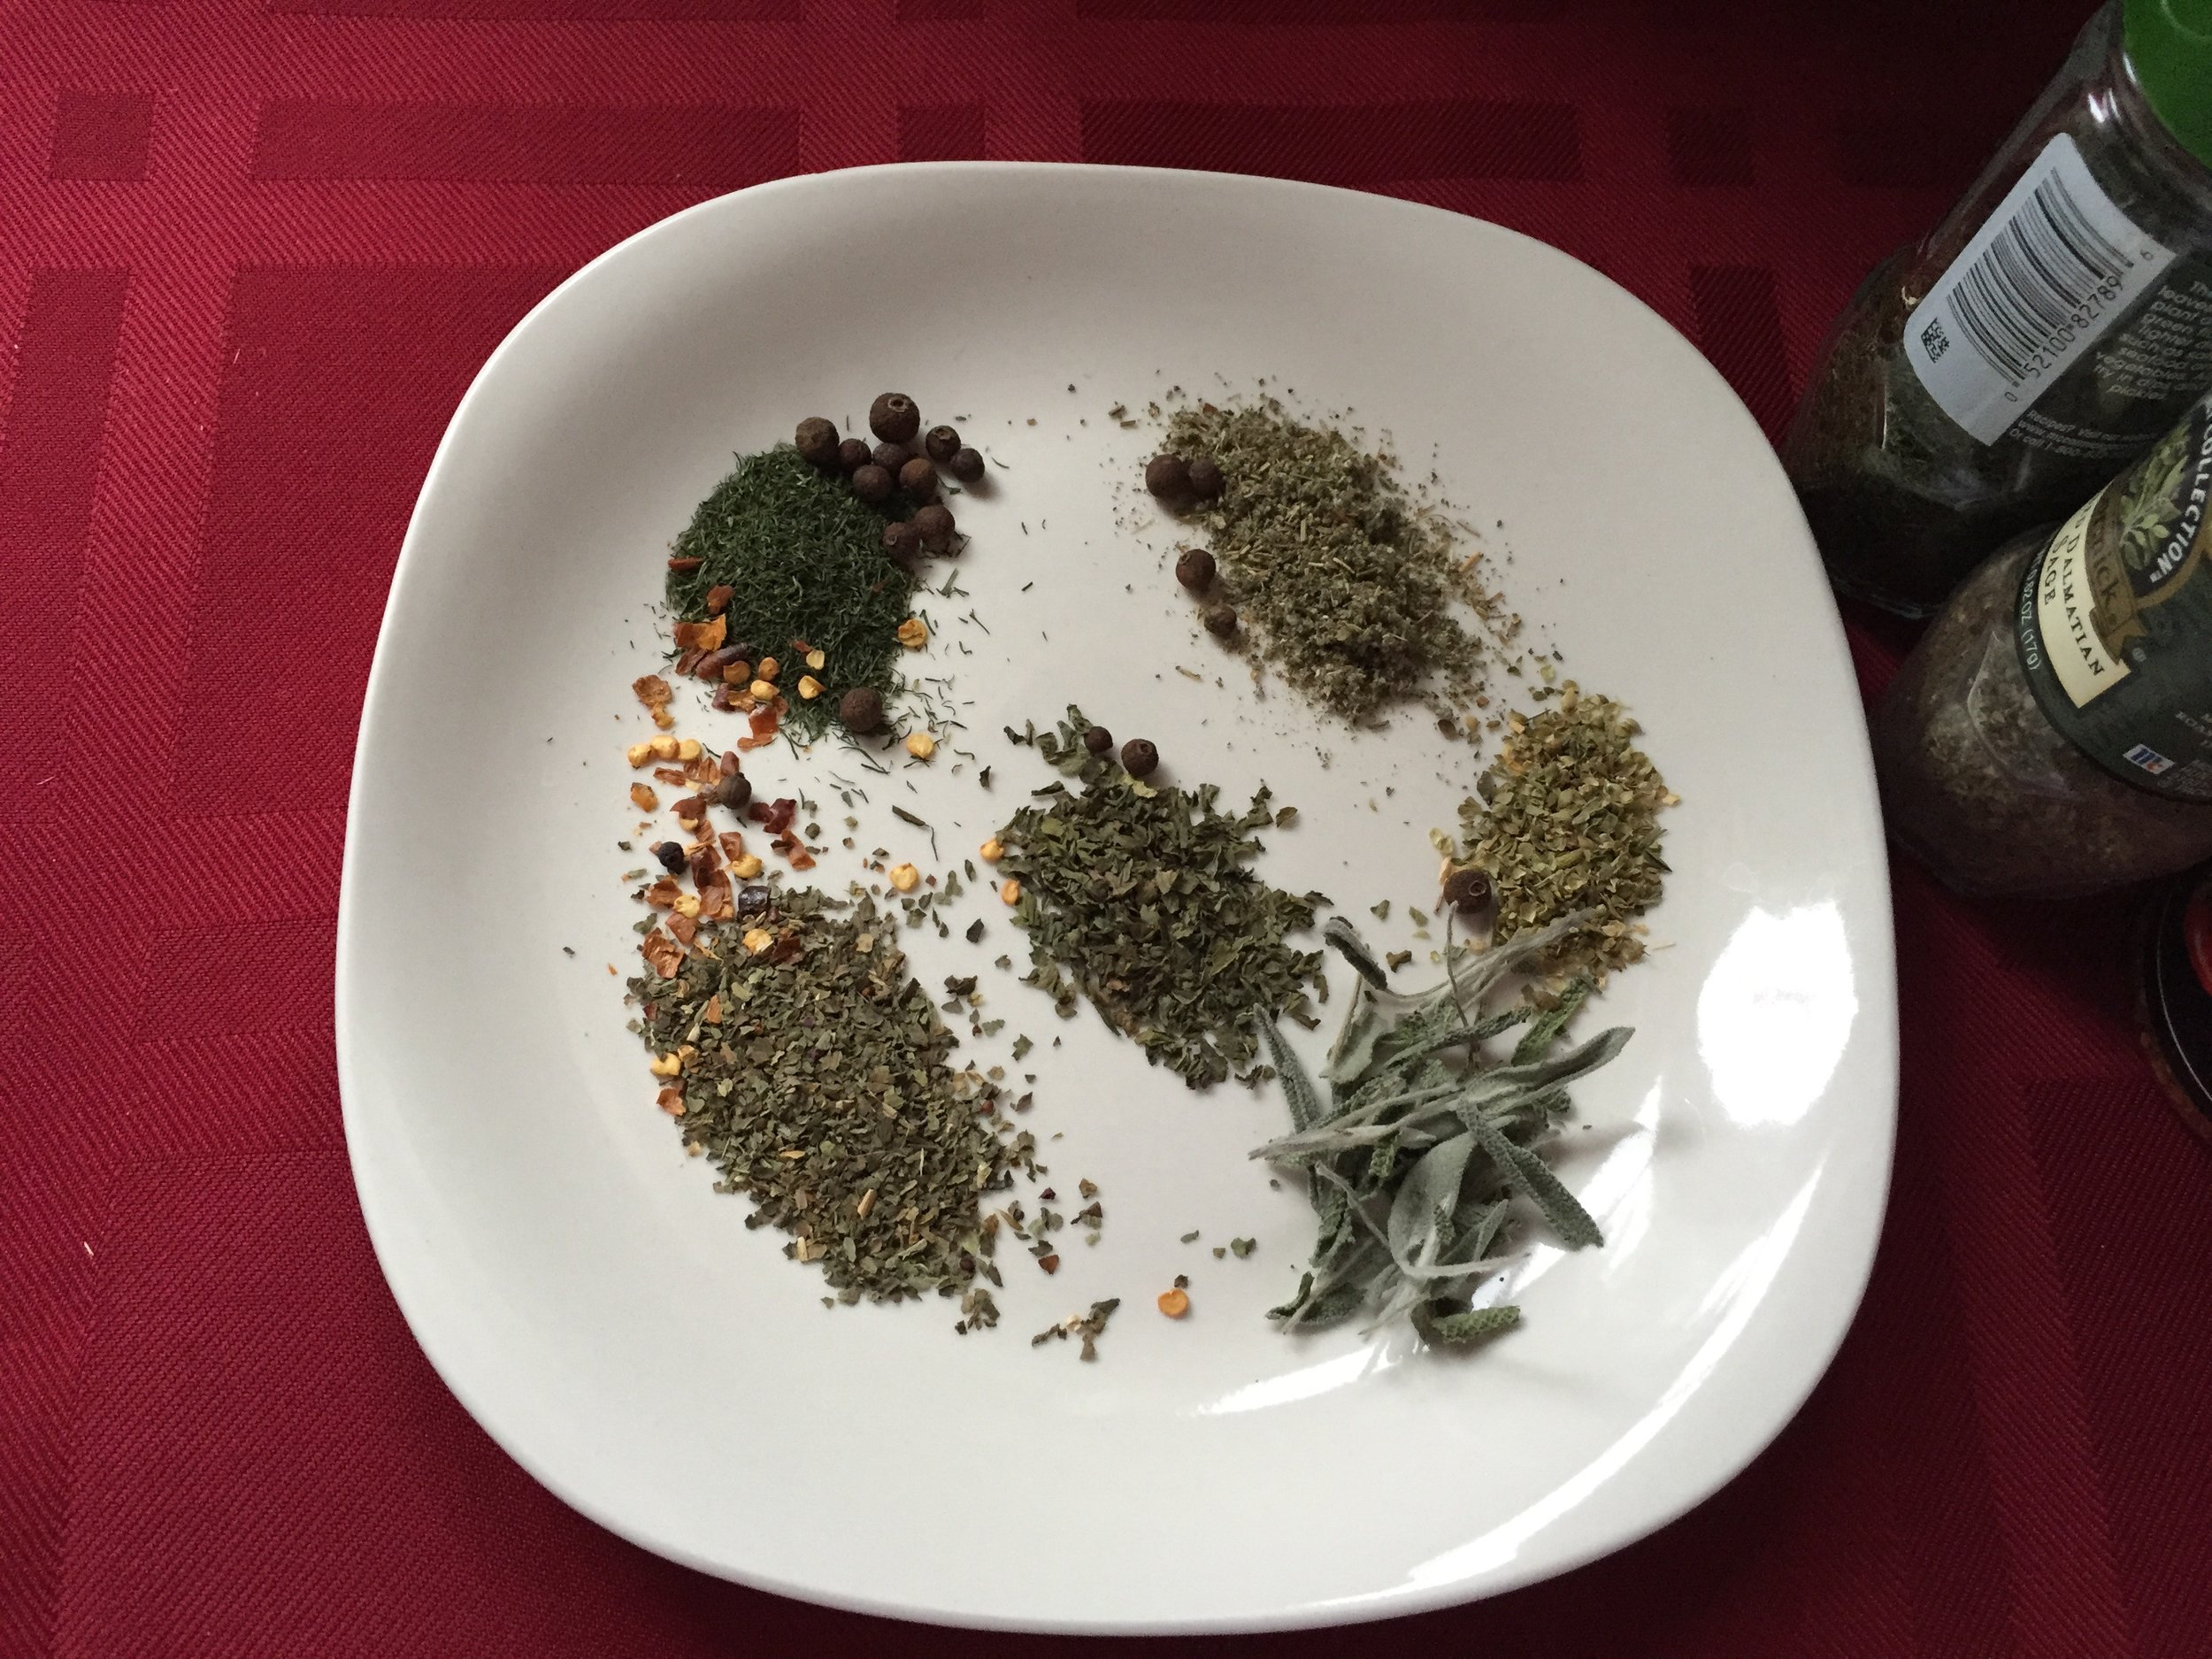 Mix and match herbs and spices for big taste with little sodium